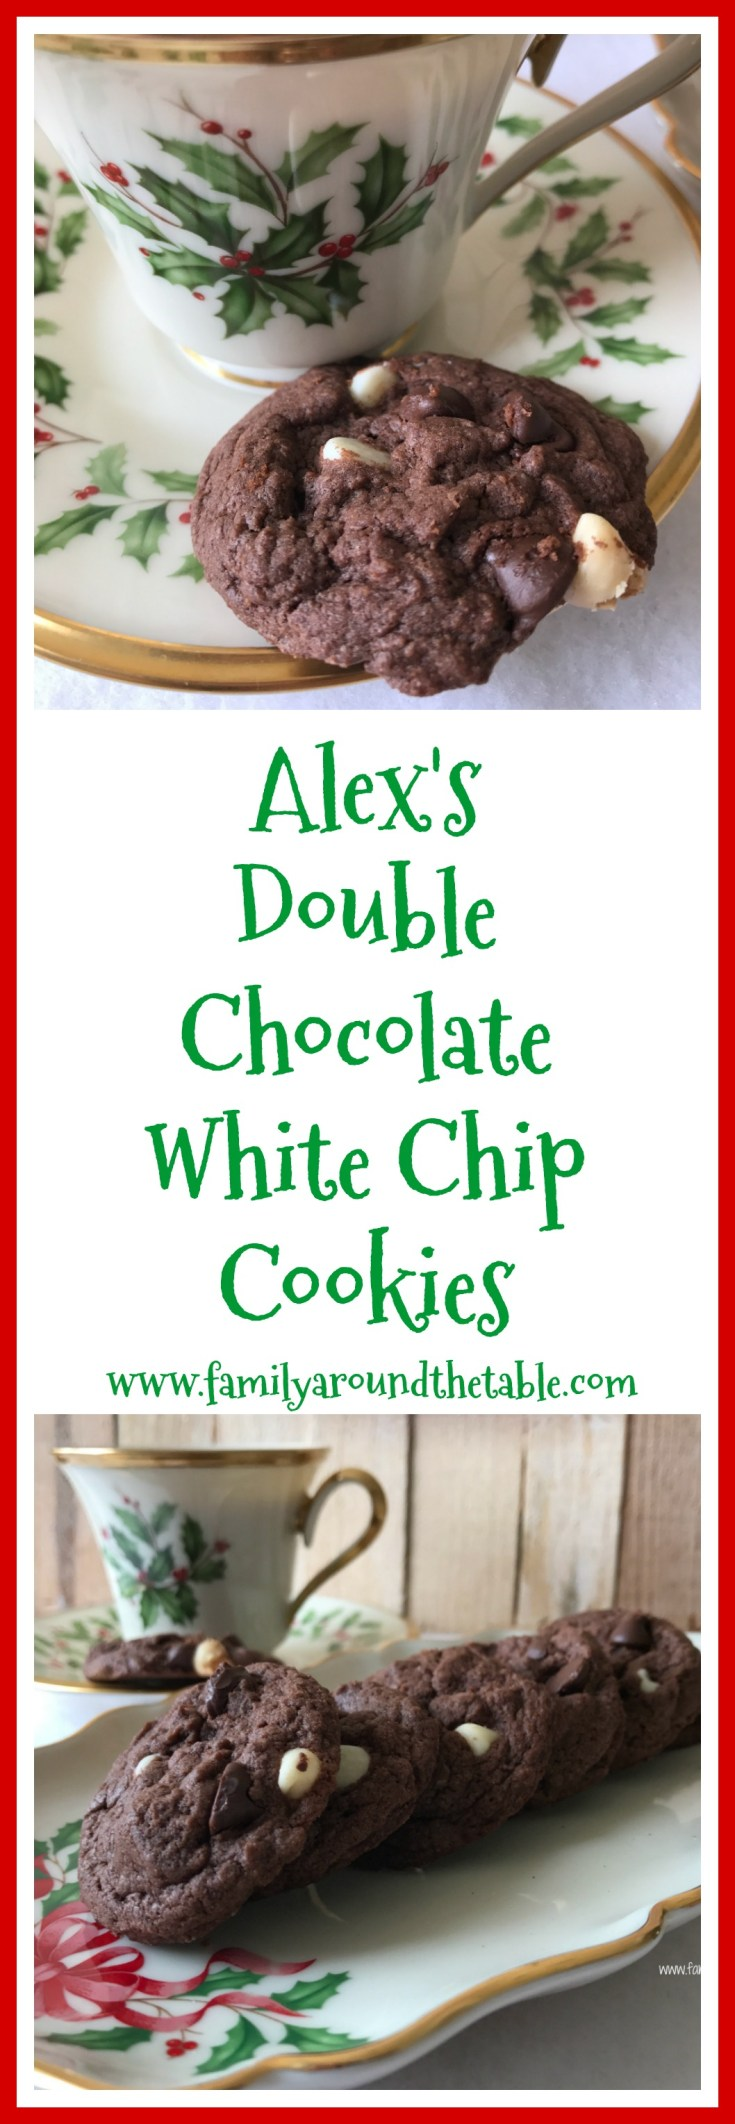 Easy enough for kids to help or for older kids to make on their own. Alex's double chocolate white chip cookies start with a mix.